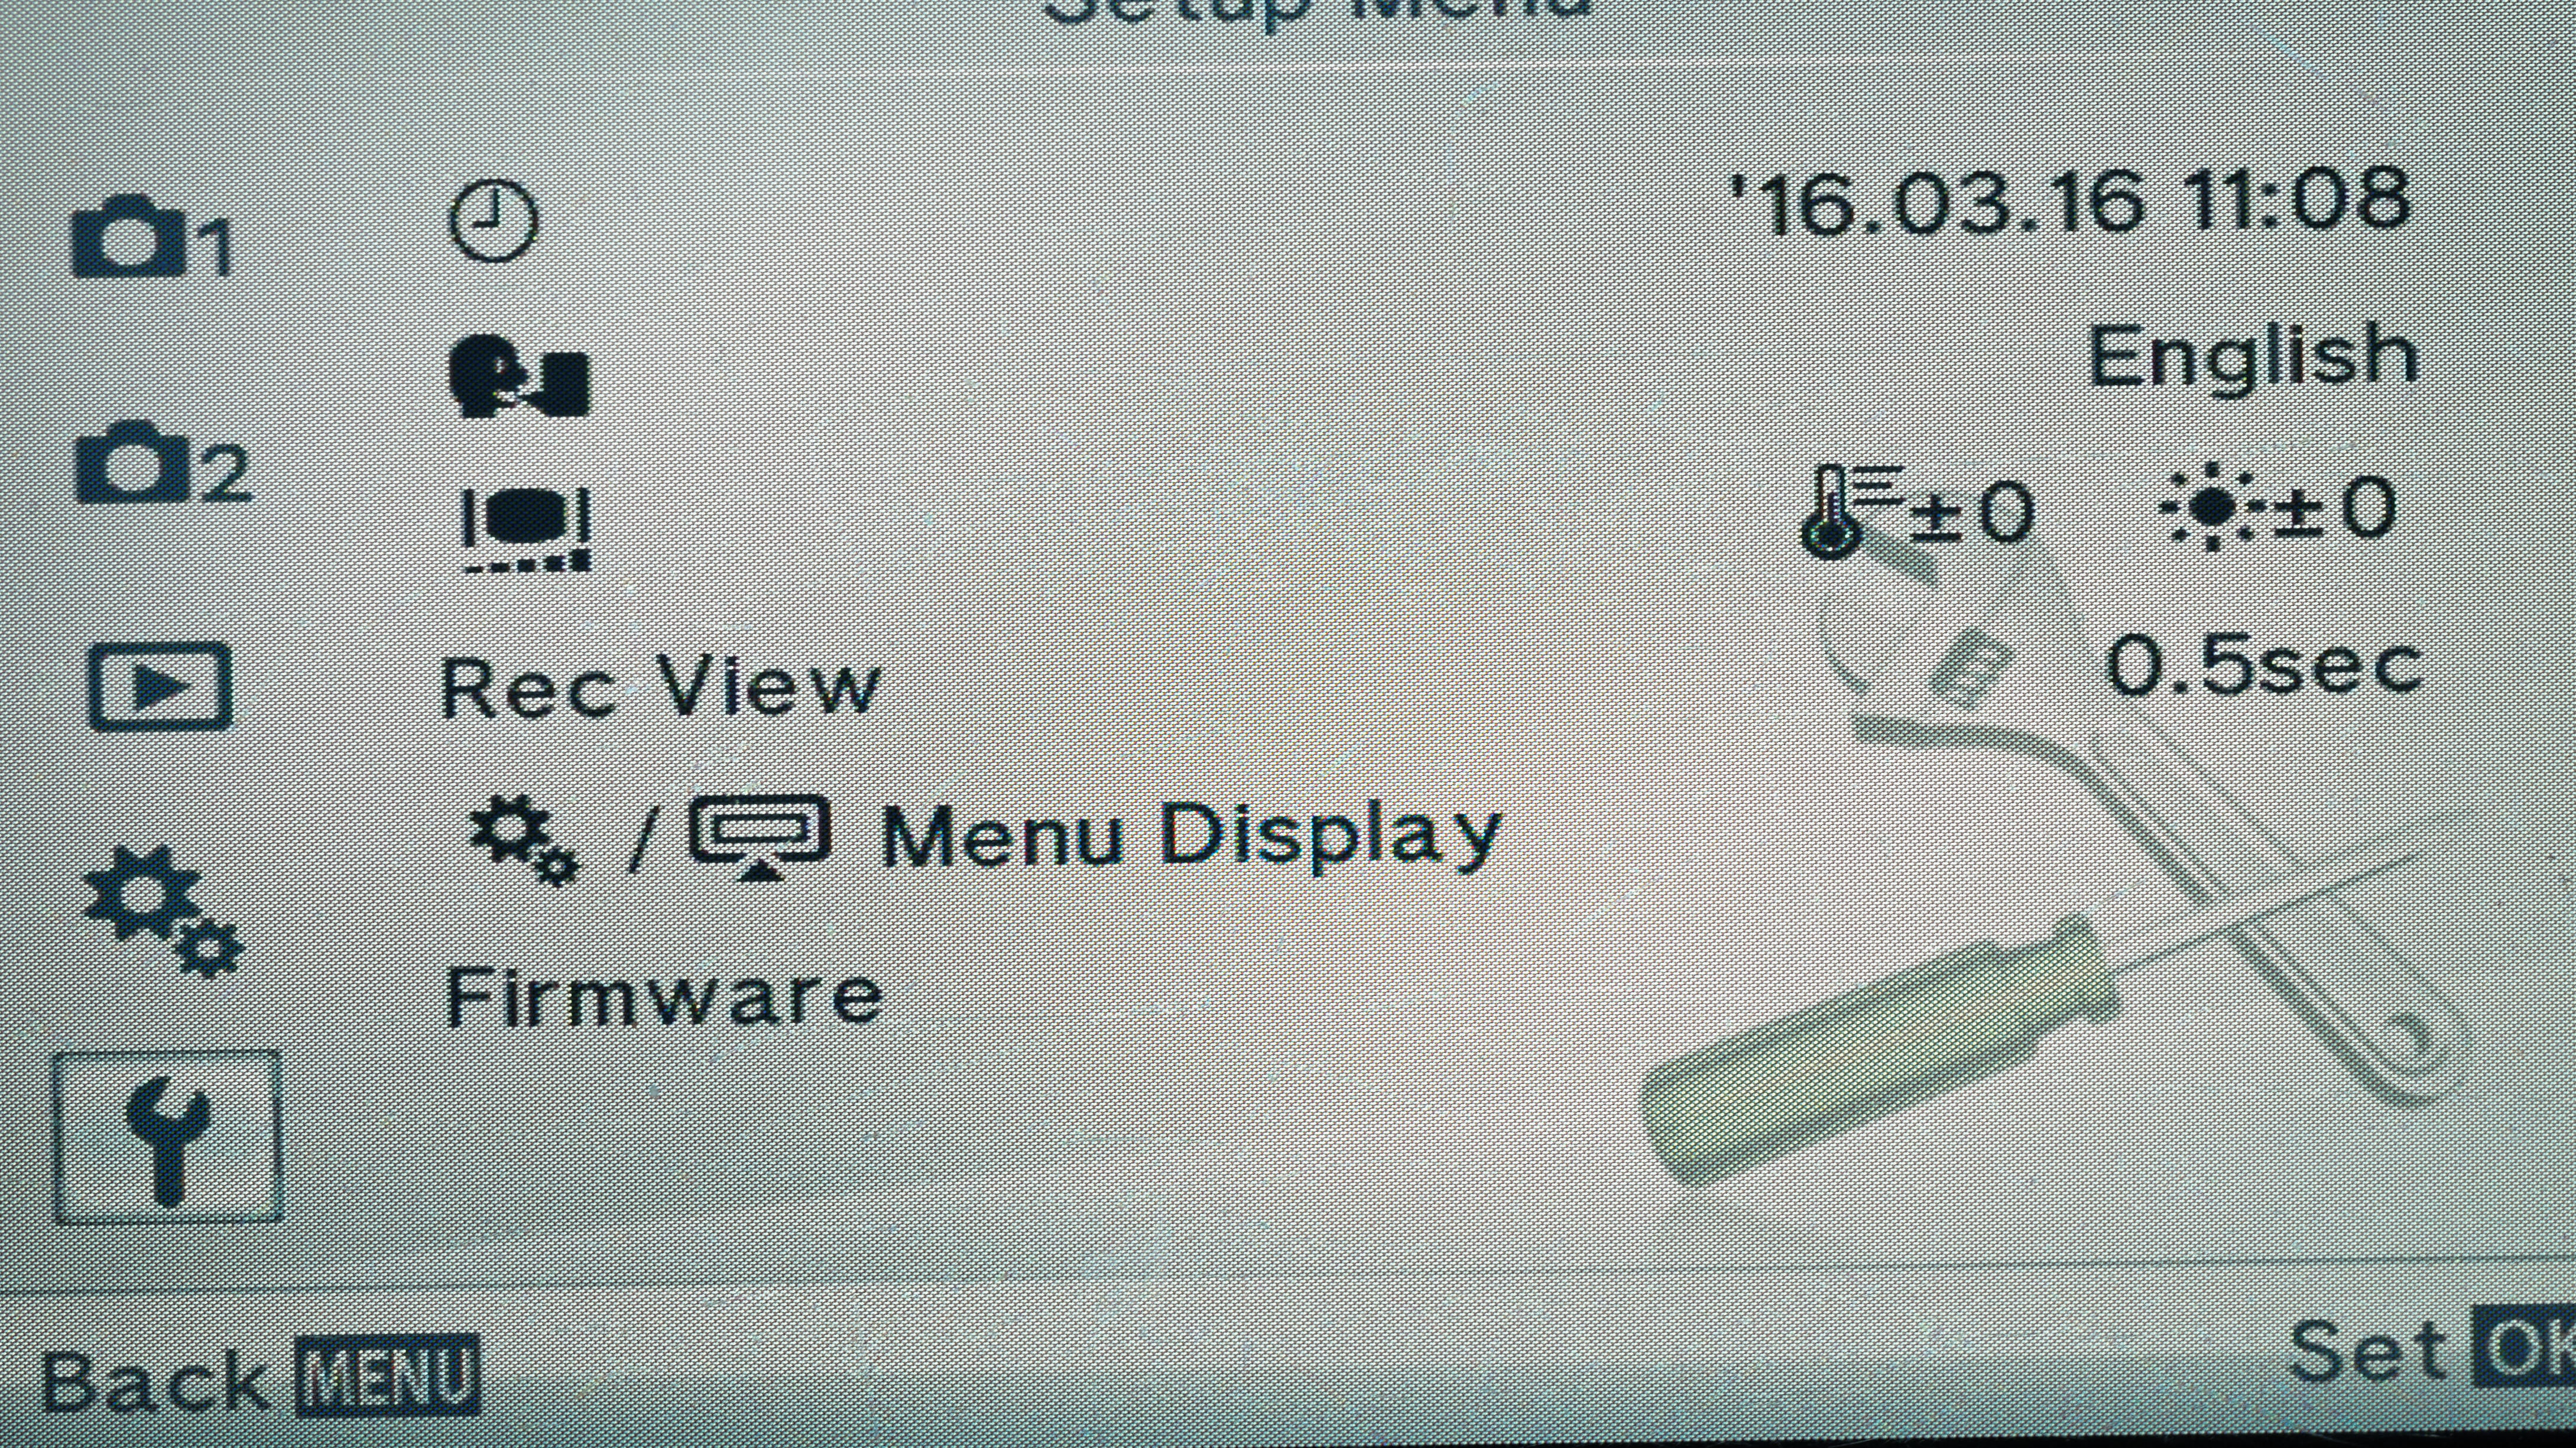 This should be Wrench-menu-3.jpeg.  Is it missing?